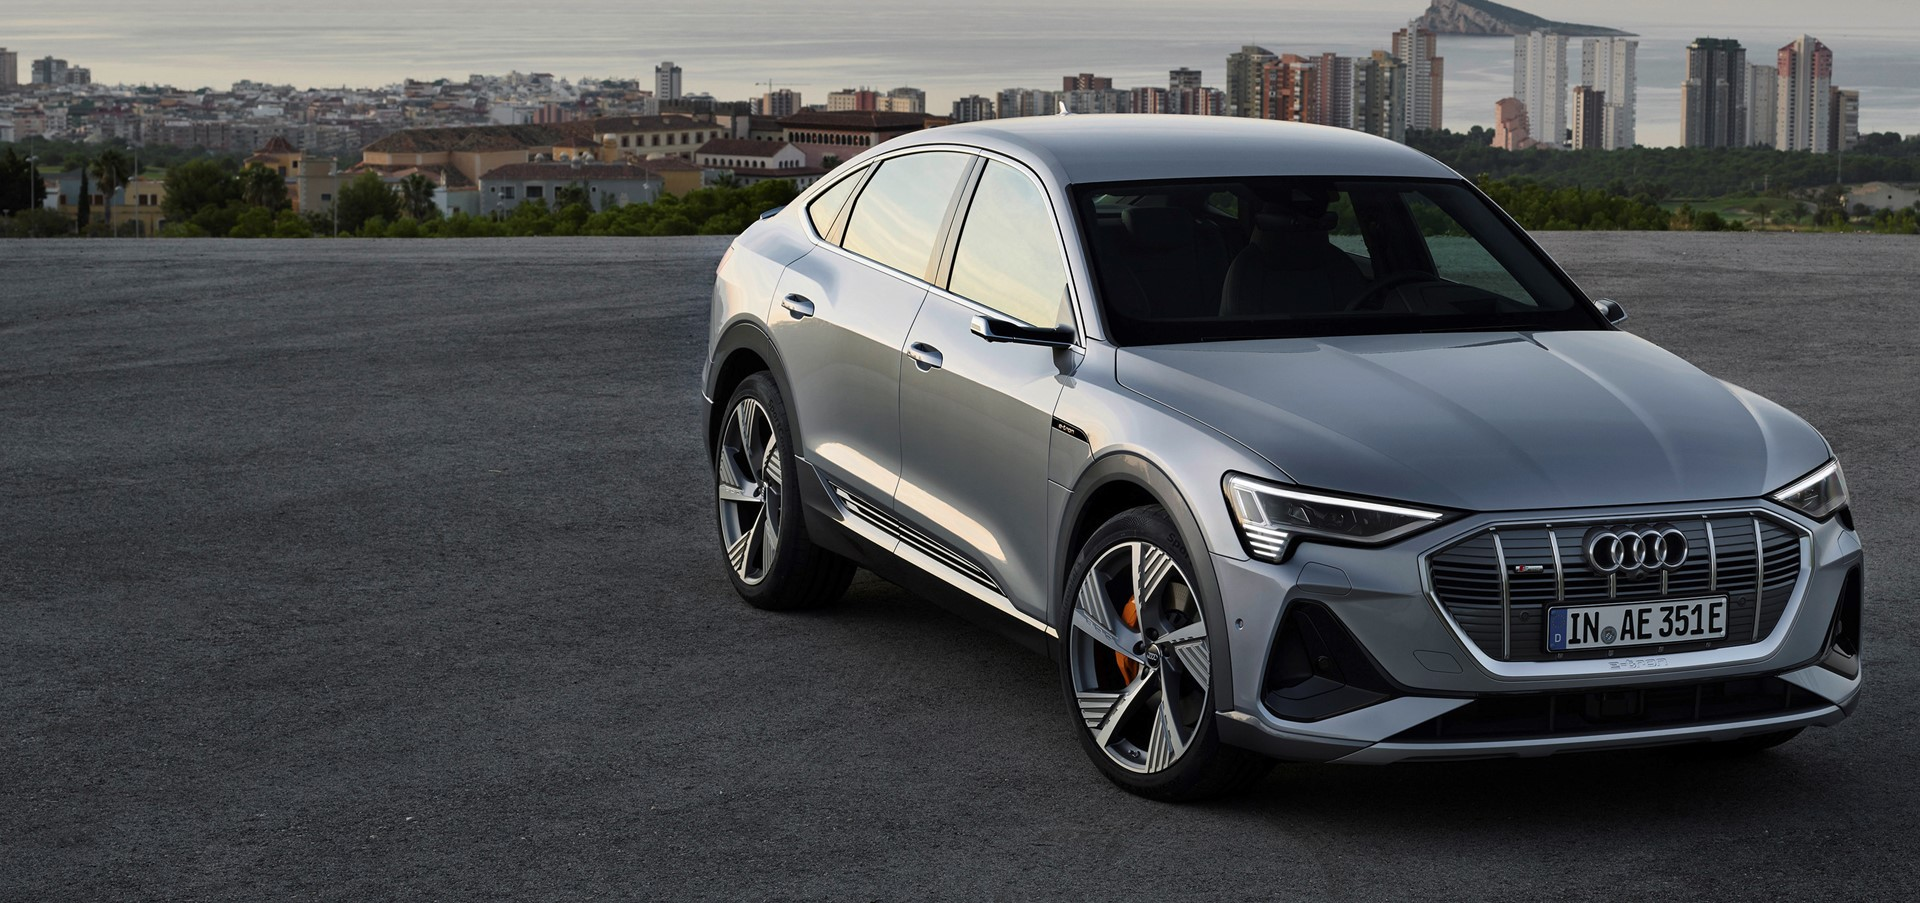 SUV Coupé for the e-tron Family: The Audi e-tron Sportback